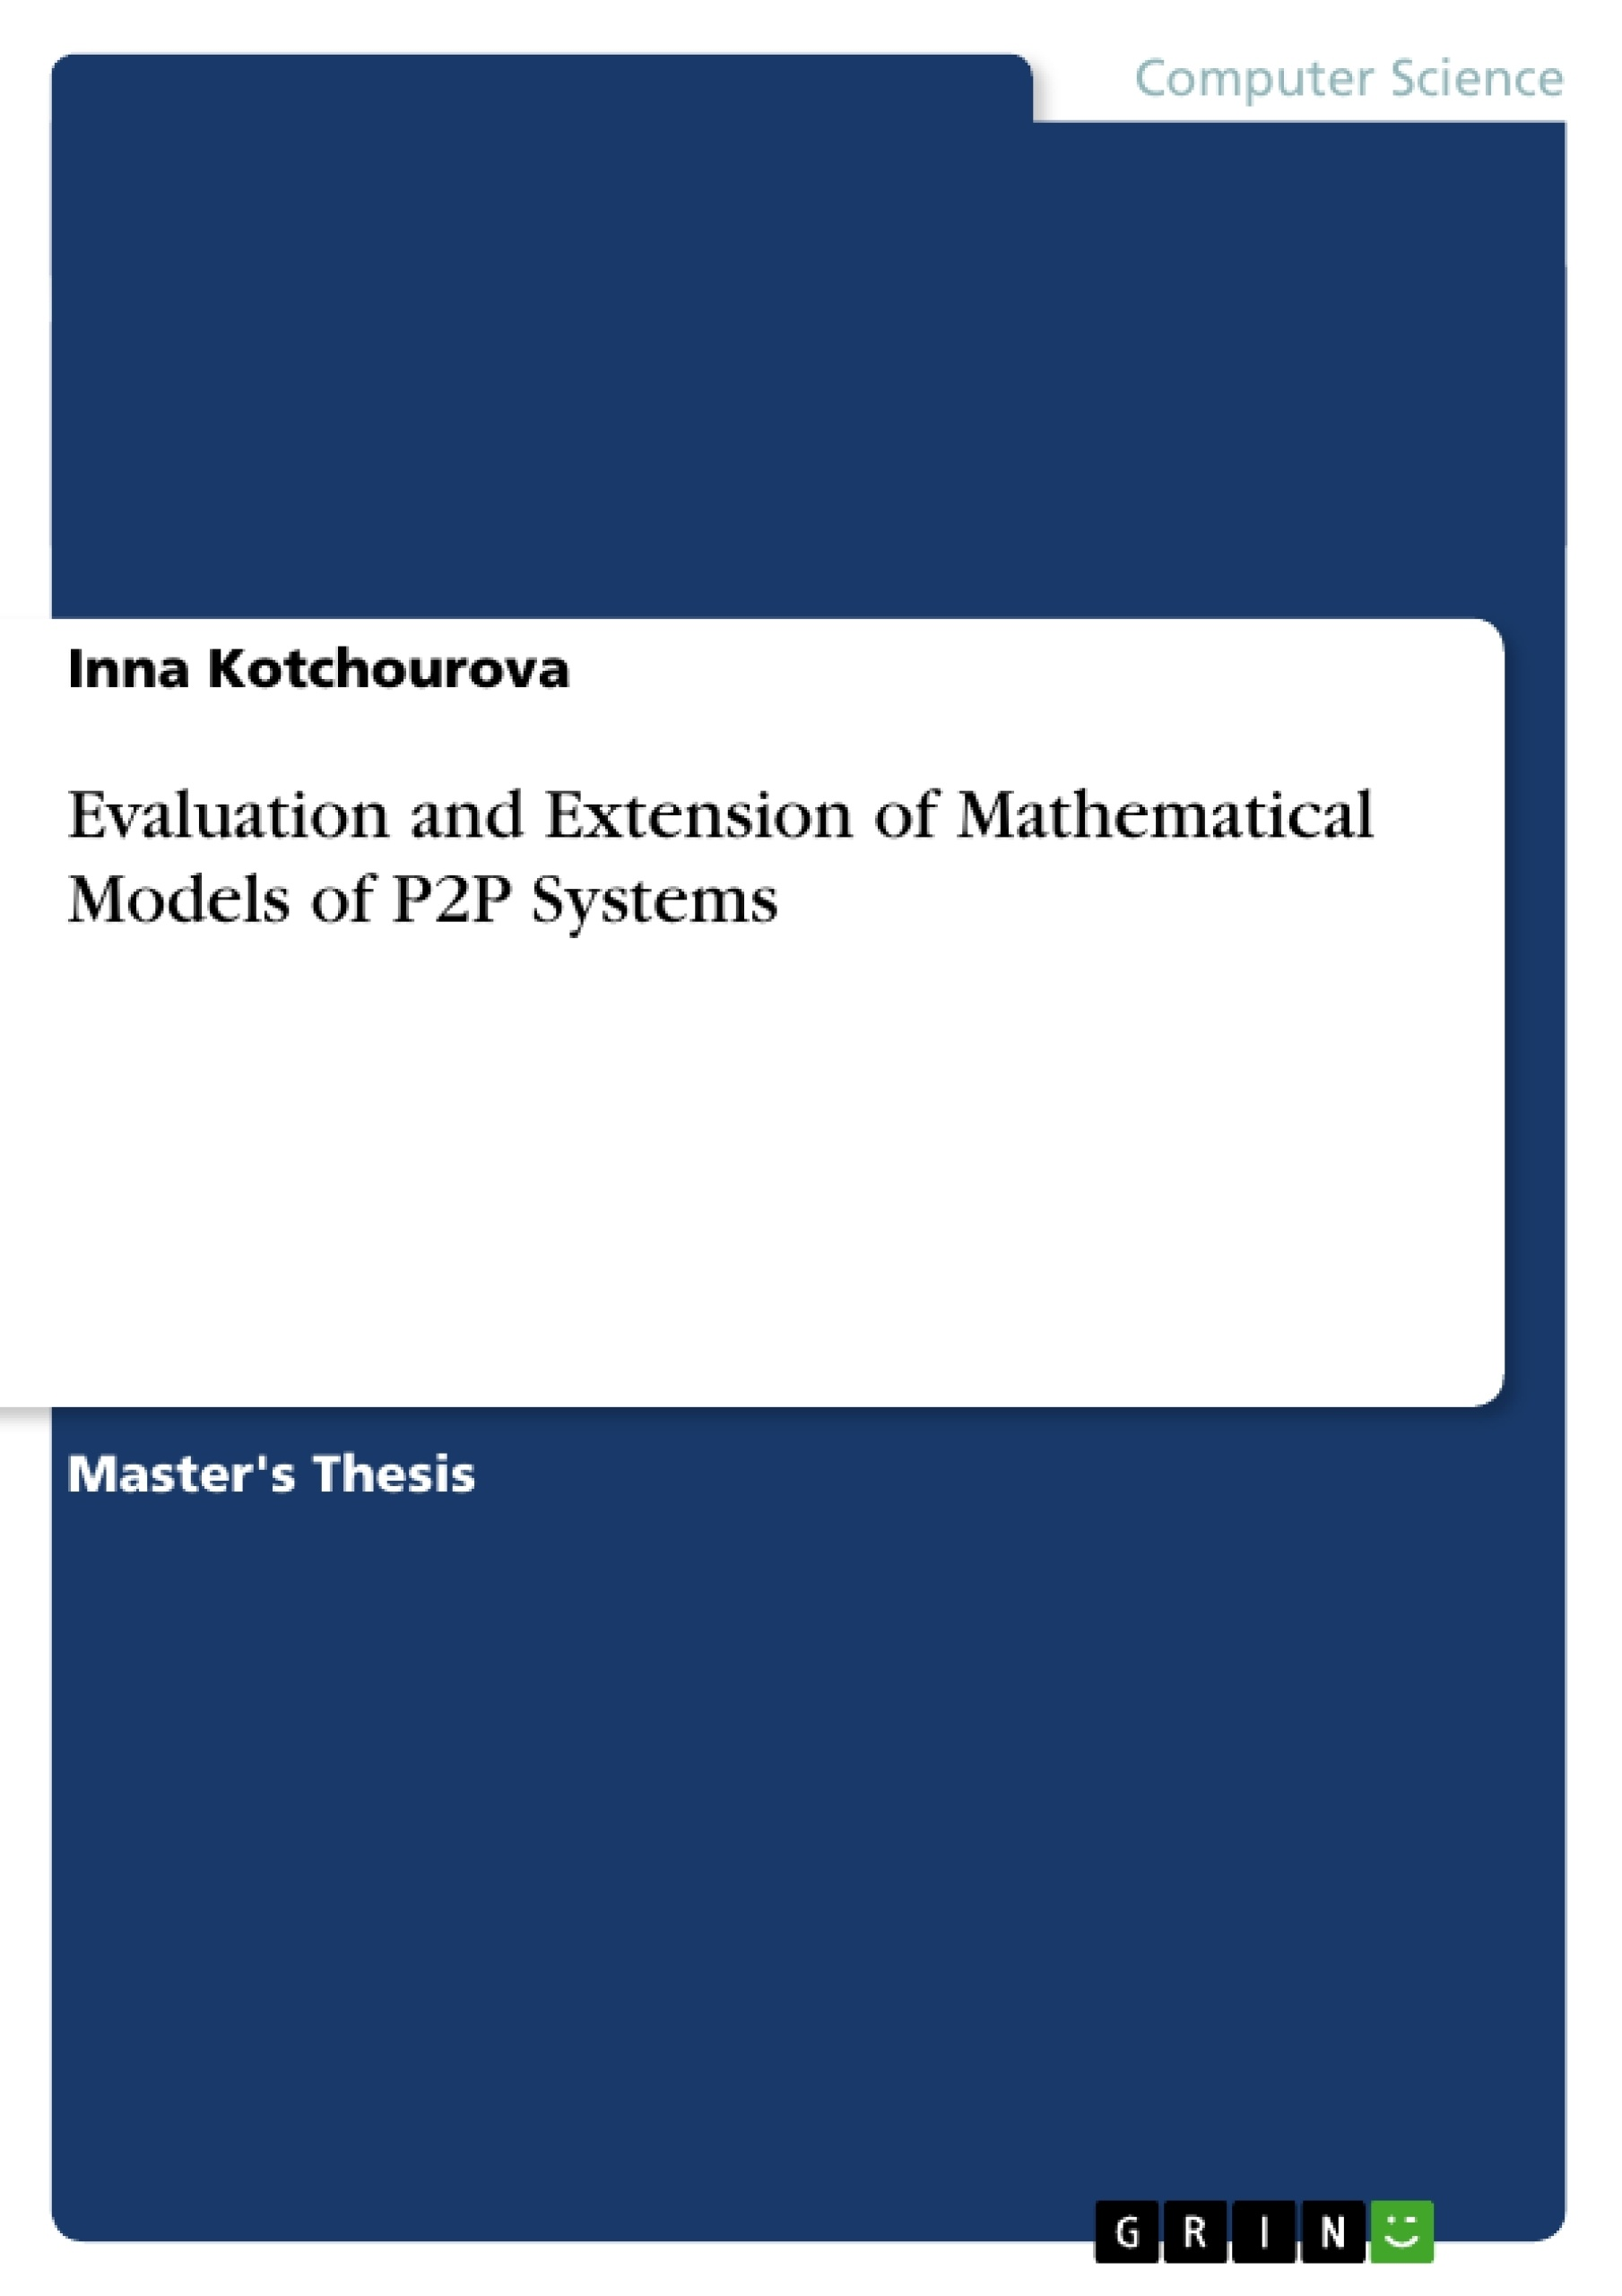 Title: Evaluation and Extension of Mathematical Models of P2P Systems